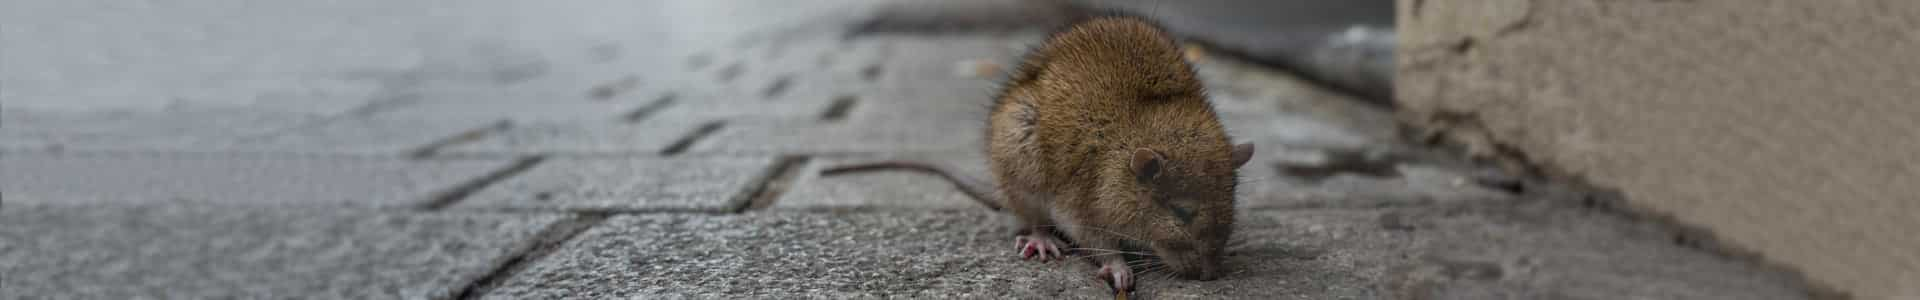 Seattle Rodent Control Services at Cascade Pest Control